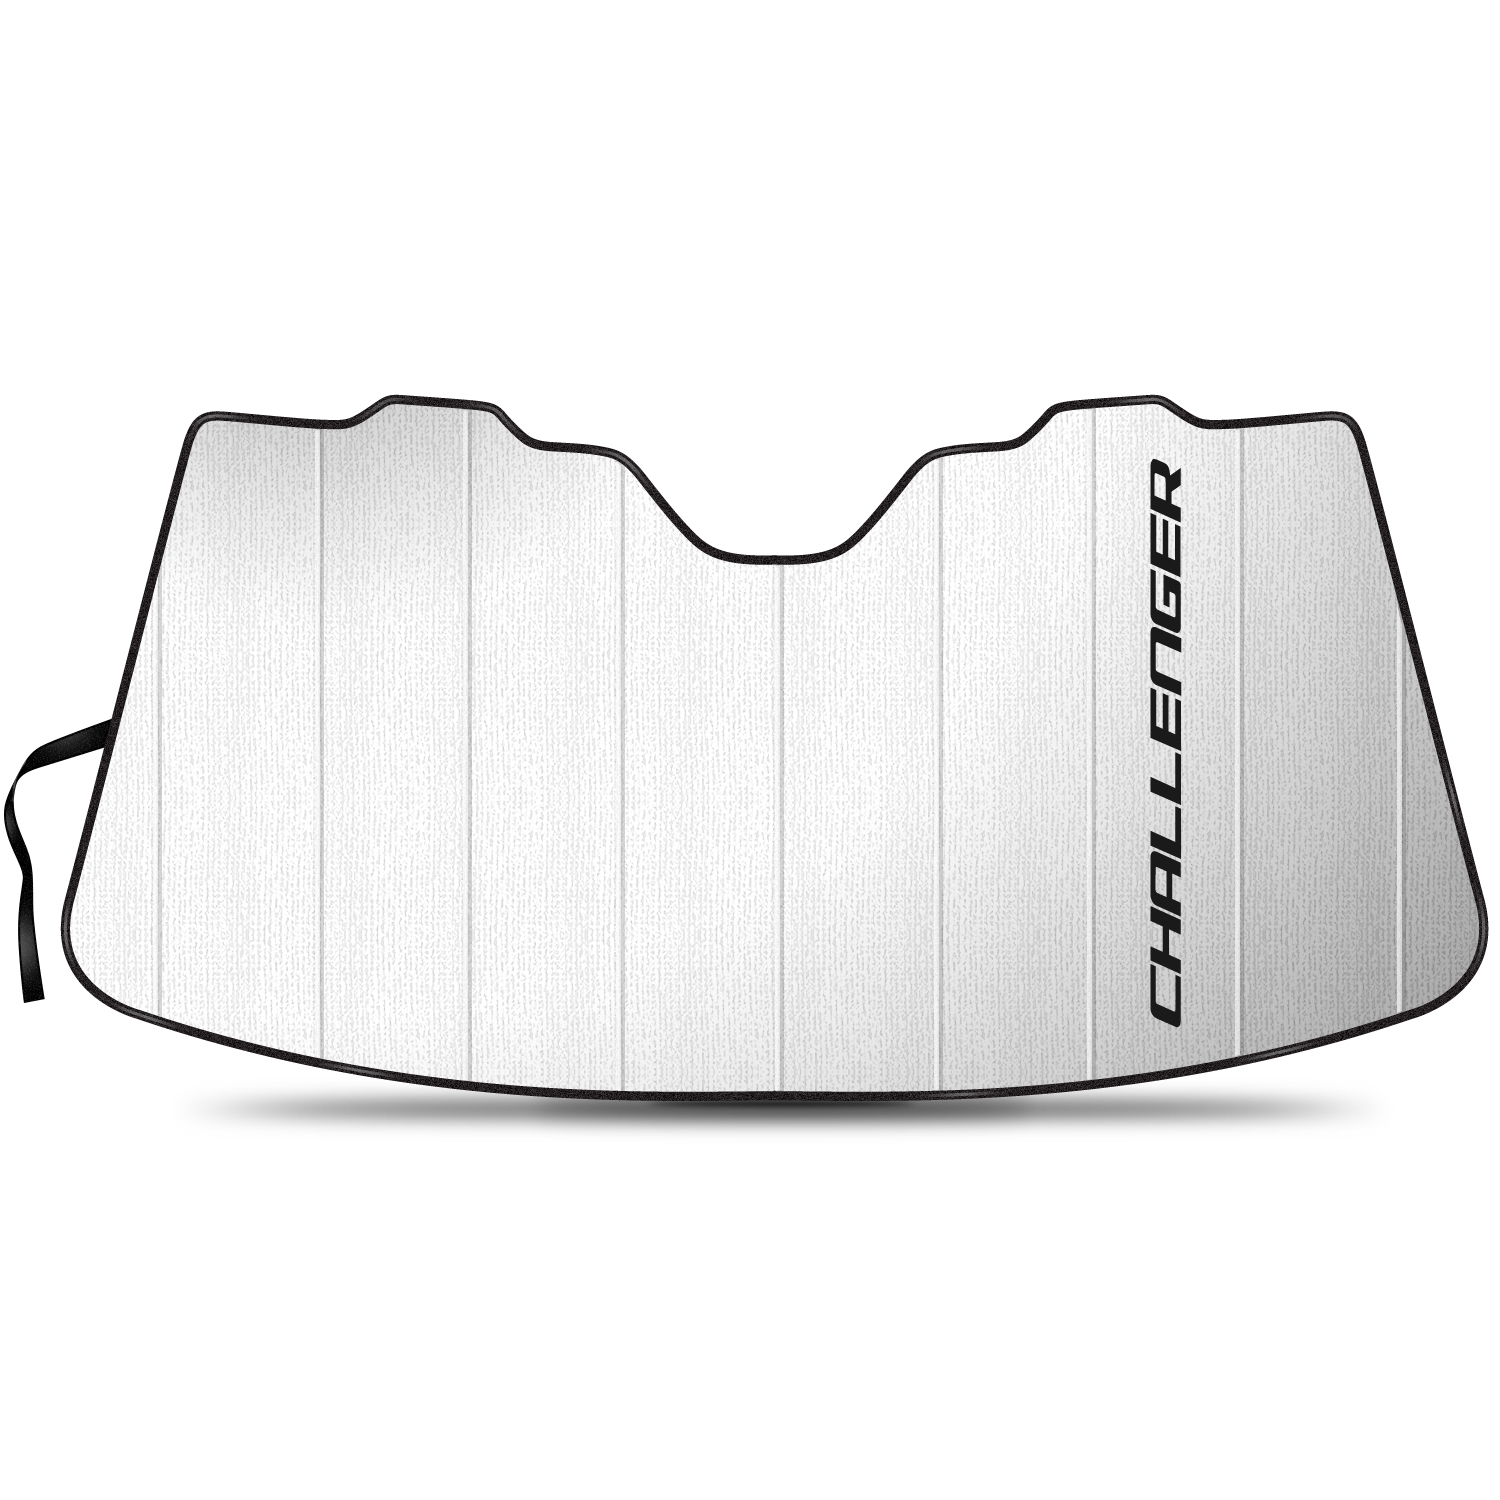 """Dodge Challenger 55-1/2""""x 27"""" Stand Up Universal Fit Auto Windshield Sun Shade"""